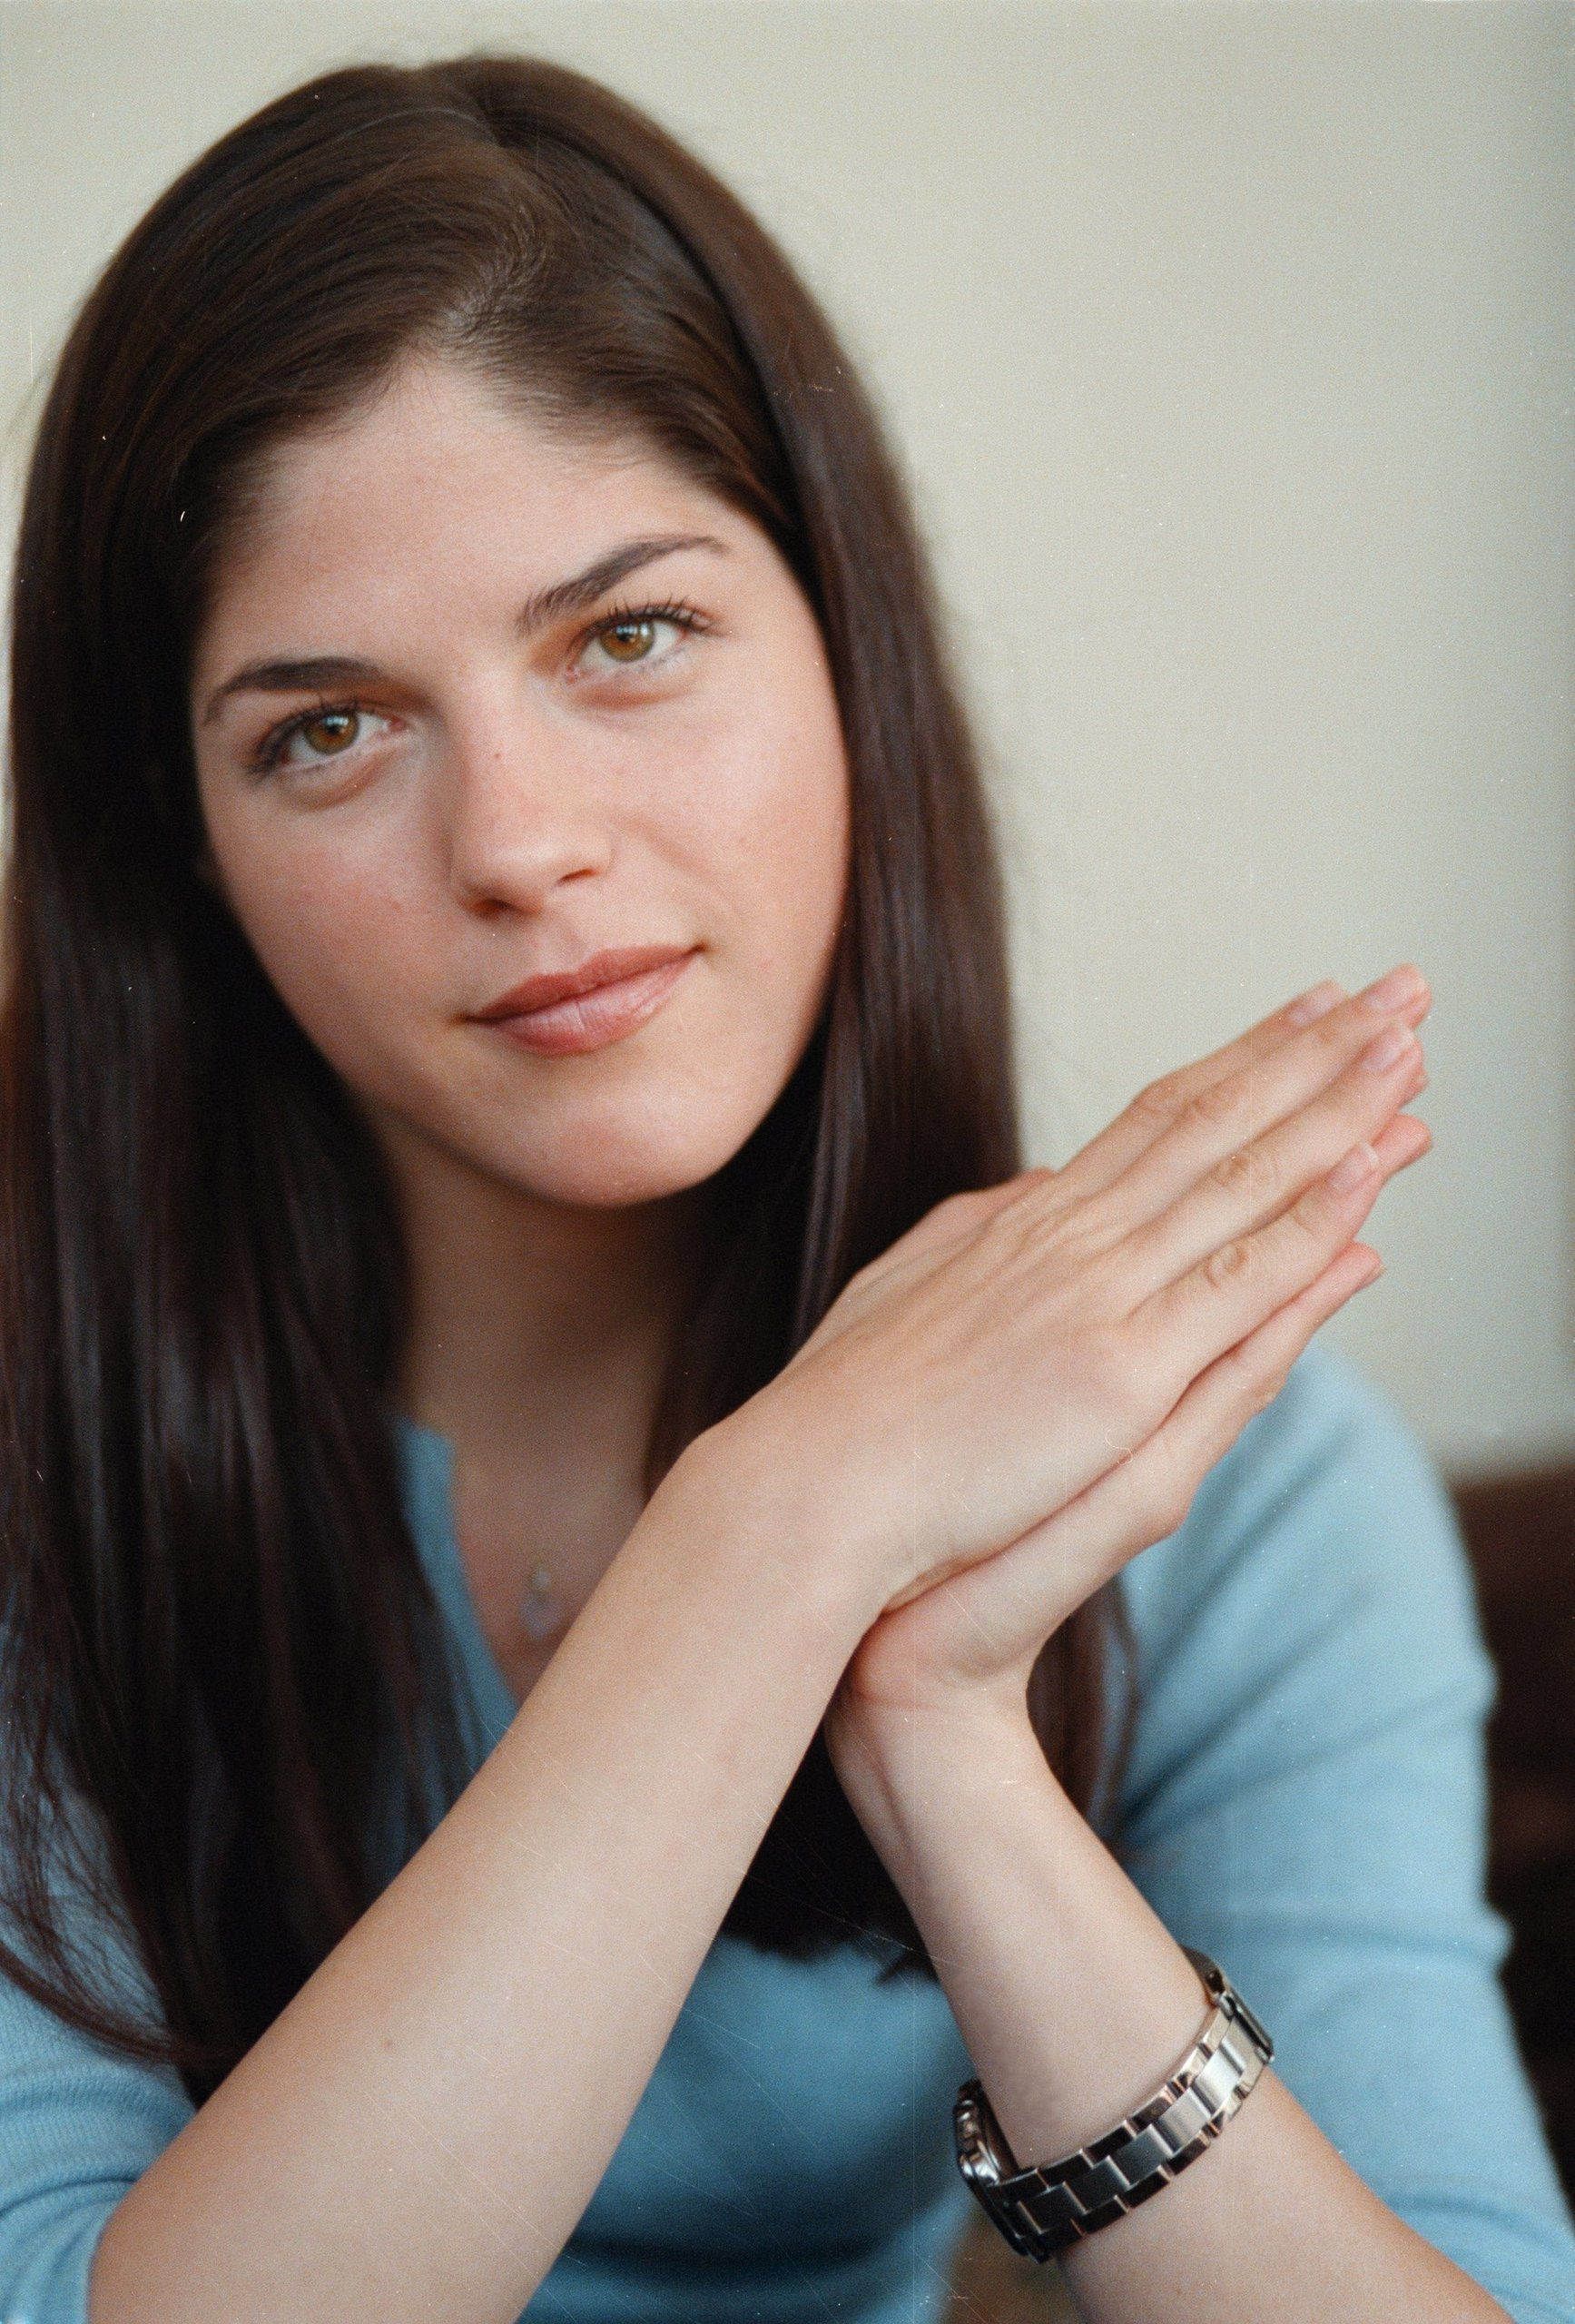 selma - SELMA Blair Photo (26060171) - Fanpop